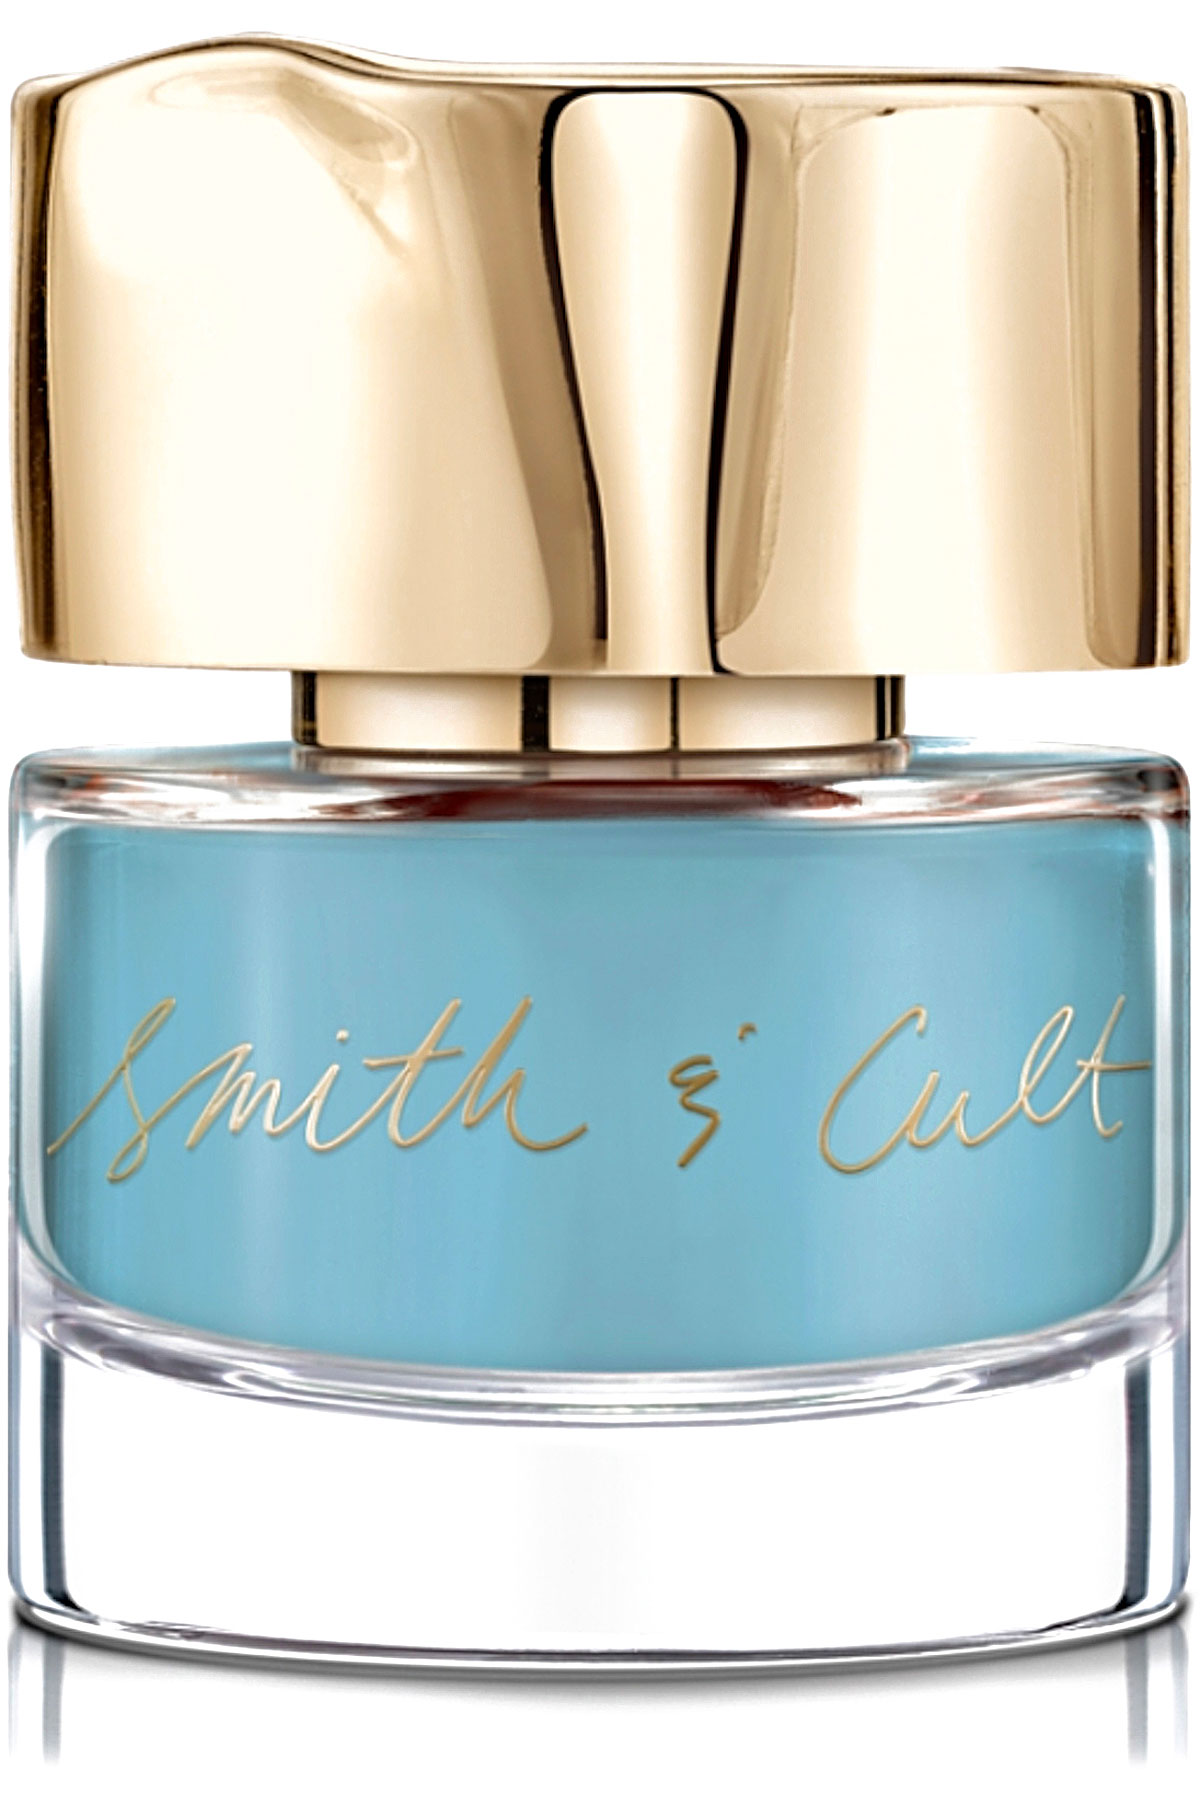 Smith & Cult Makeup for Women On Sale, Cut The Mullet - Nail Lacquer - 14 Ml, Pale Dull Blue, 2019, 14 ml